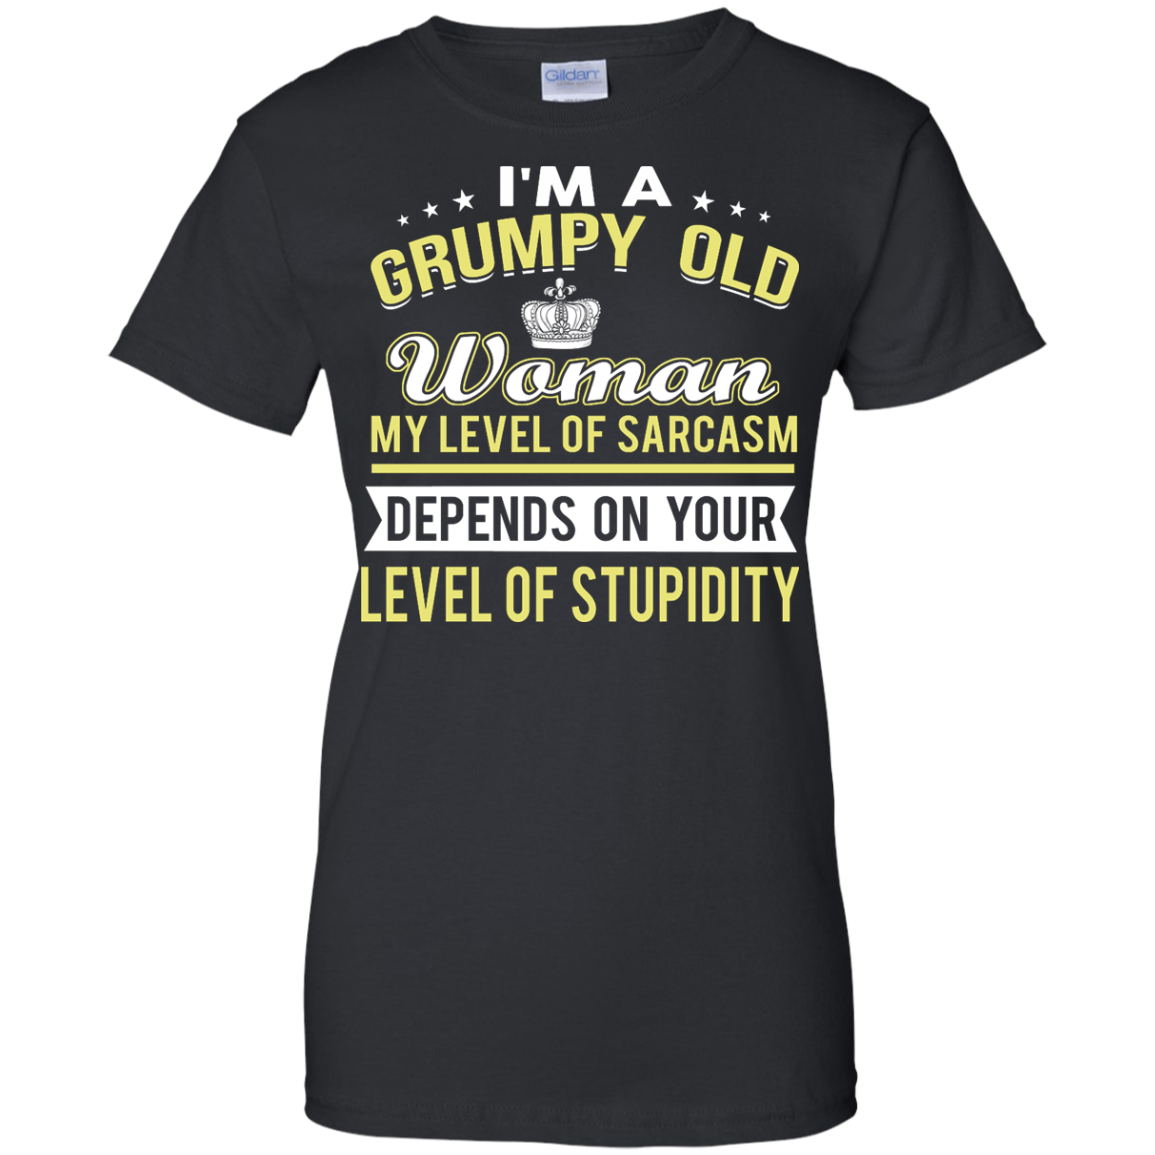 image 1024px I'm a grumpy old woman my level of sarcasm depends on your level of stupidity t shirts